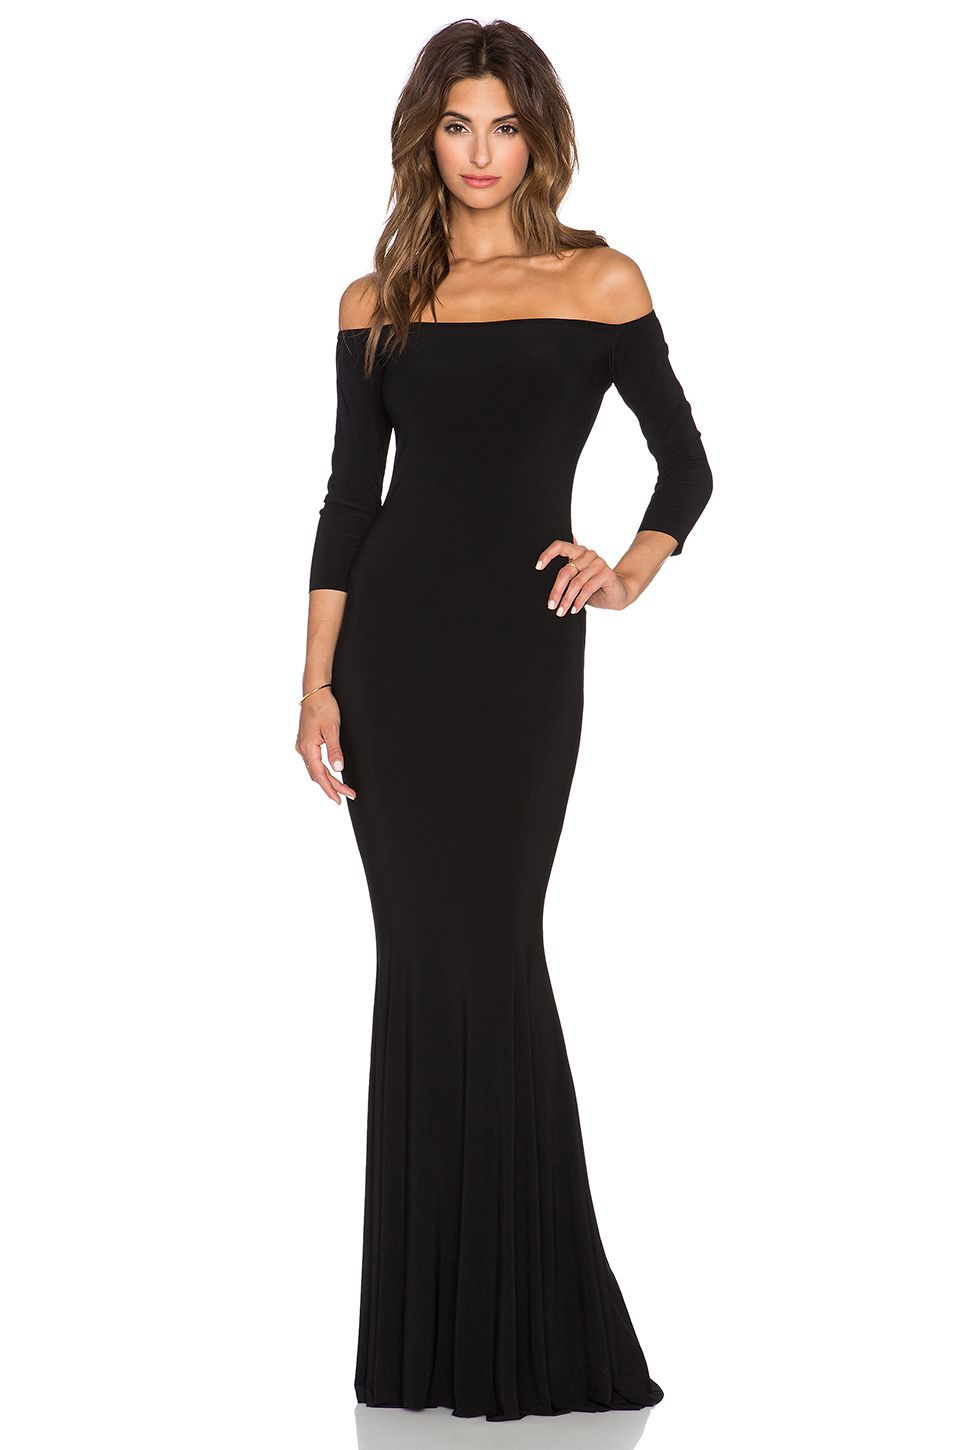 Norma kamali norma kulture off the shoulder fishtail gown in black black tie affair ombrellifo Choice Image